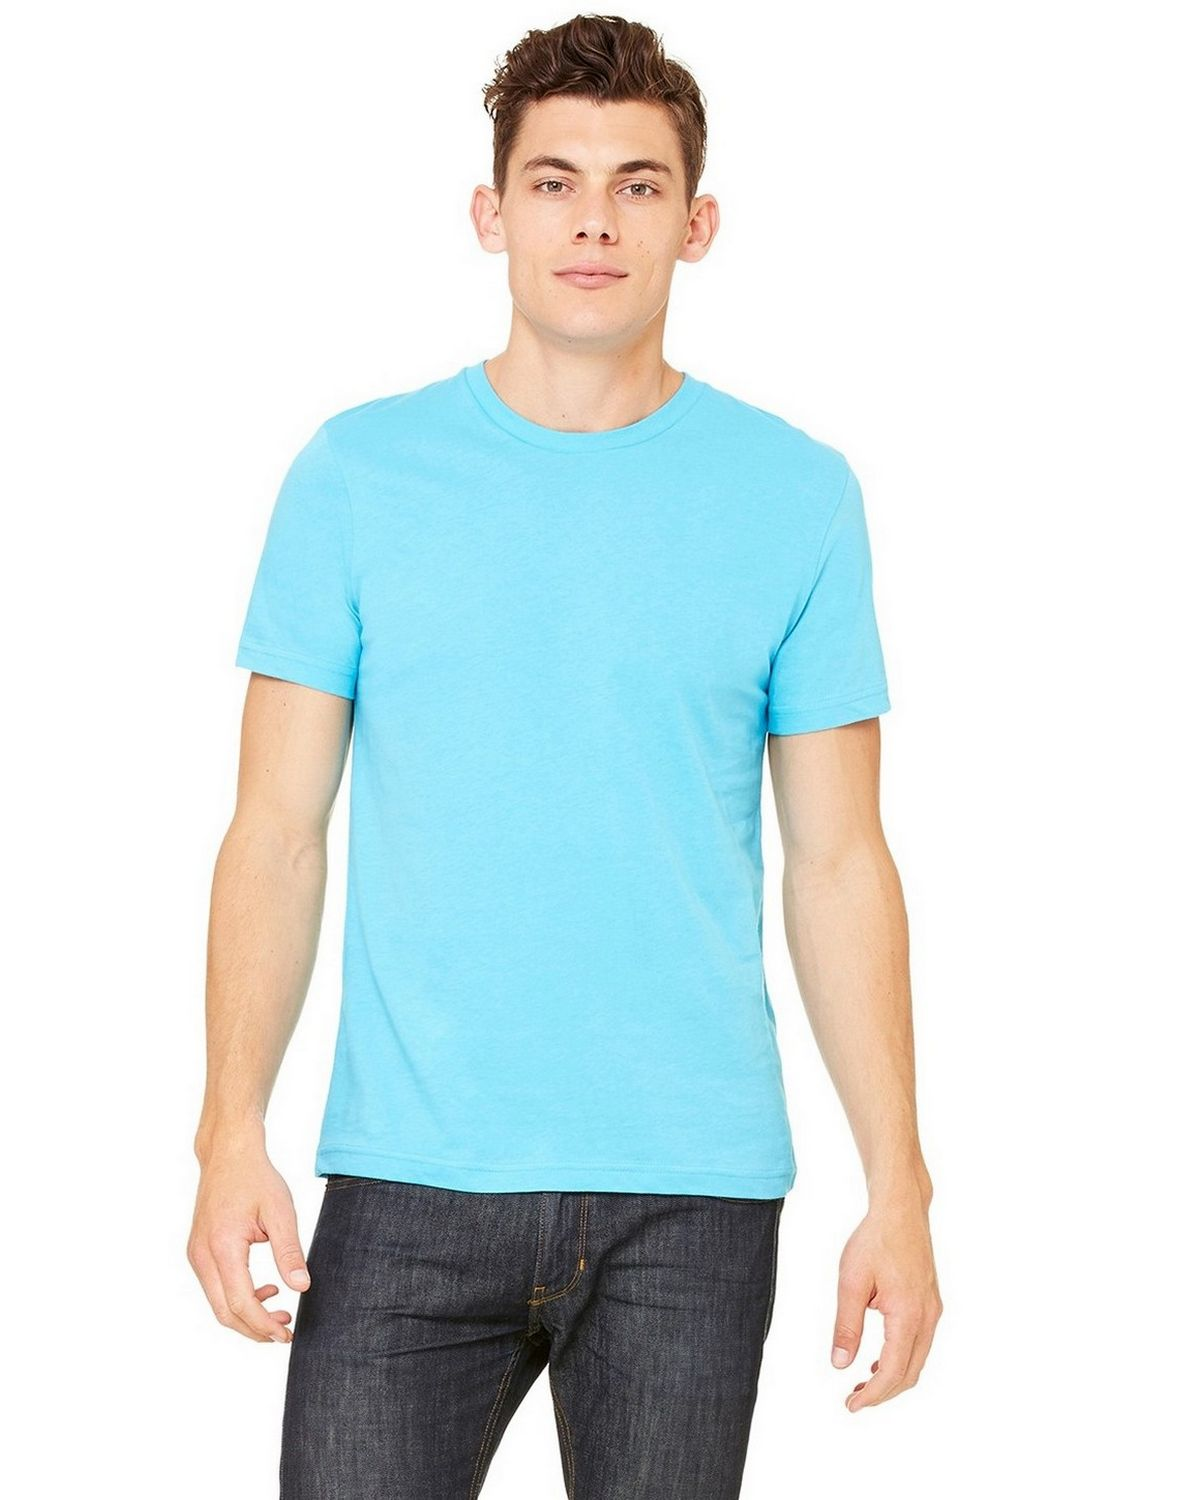 Bella + Canvas 3001C Unisex Jersey Short-Sleeve T-Shirt - Heather Aqua - M 3001C